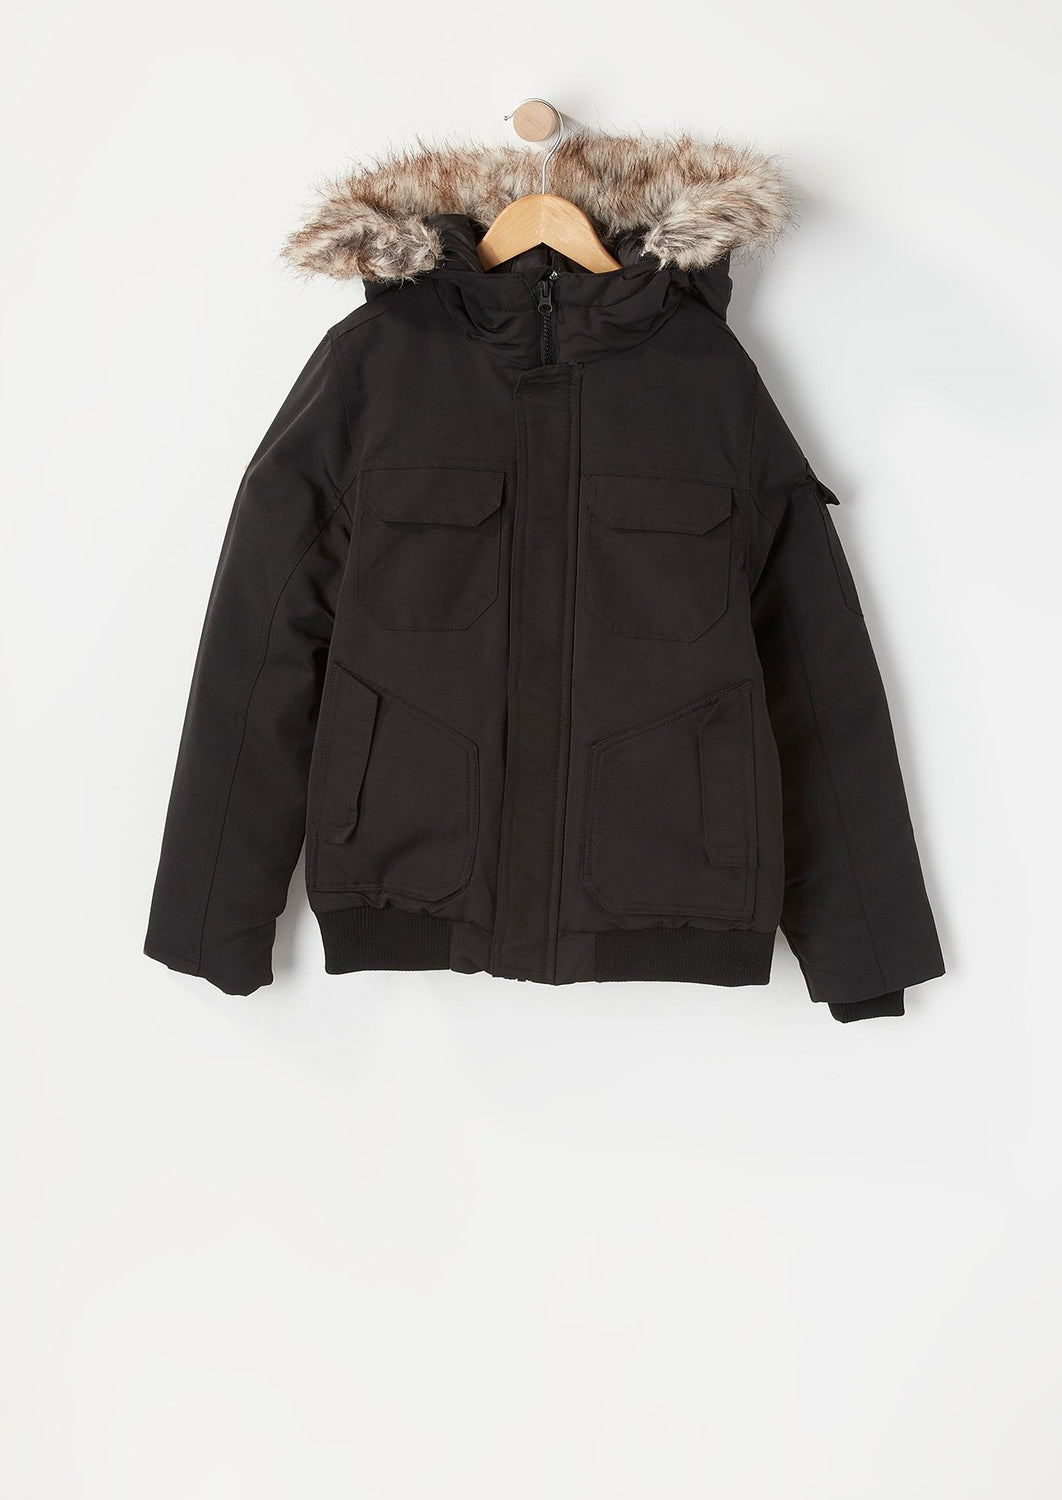 West49 Youth 4 Bomber Jacket Black